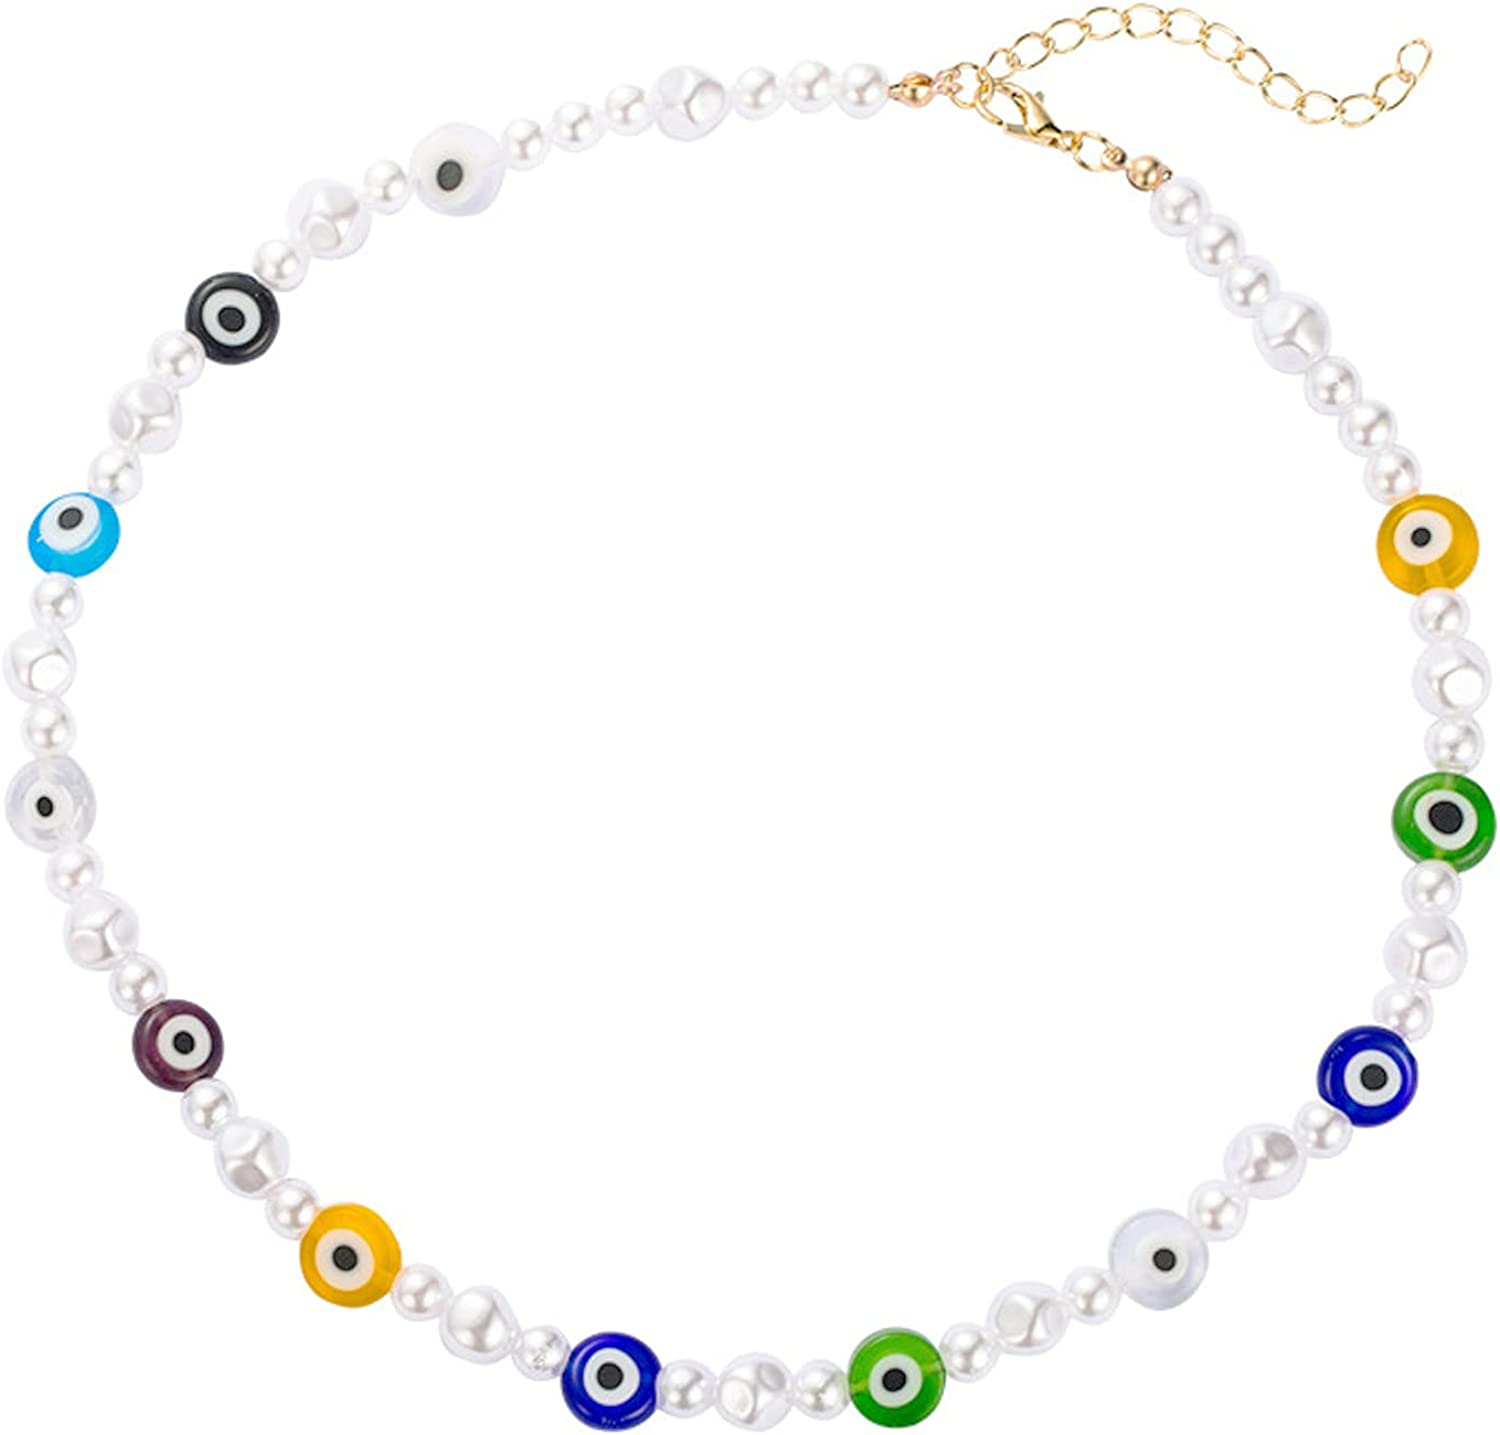 COLORFUL BLING Evil Eye Pearl Beaded Choker Necklace, Bohemian Evil Eye Glaze Beads Pearls Strand Necklace for Women Girls Y2k Style Summer Beach Vacation Amulet Jewelry